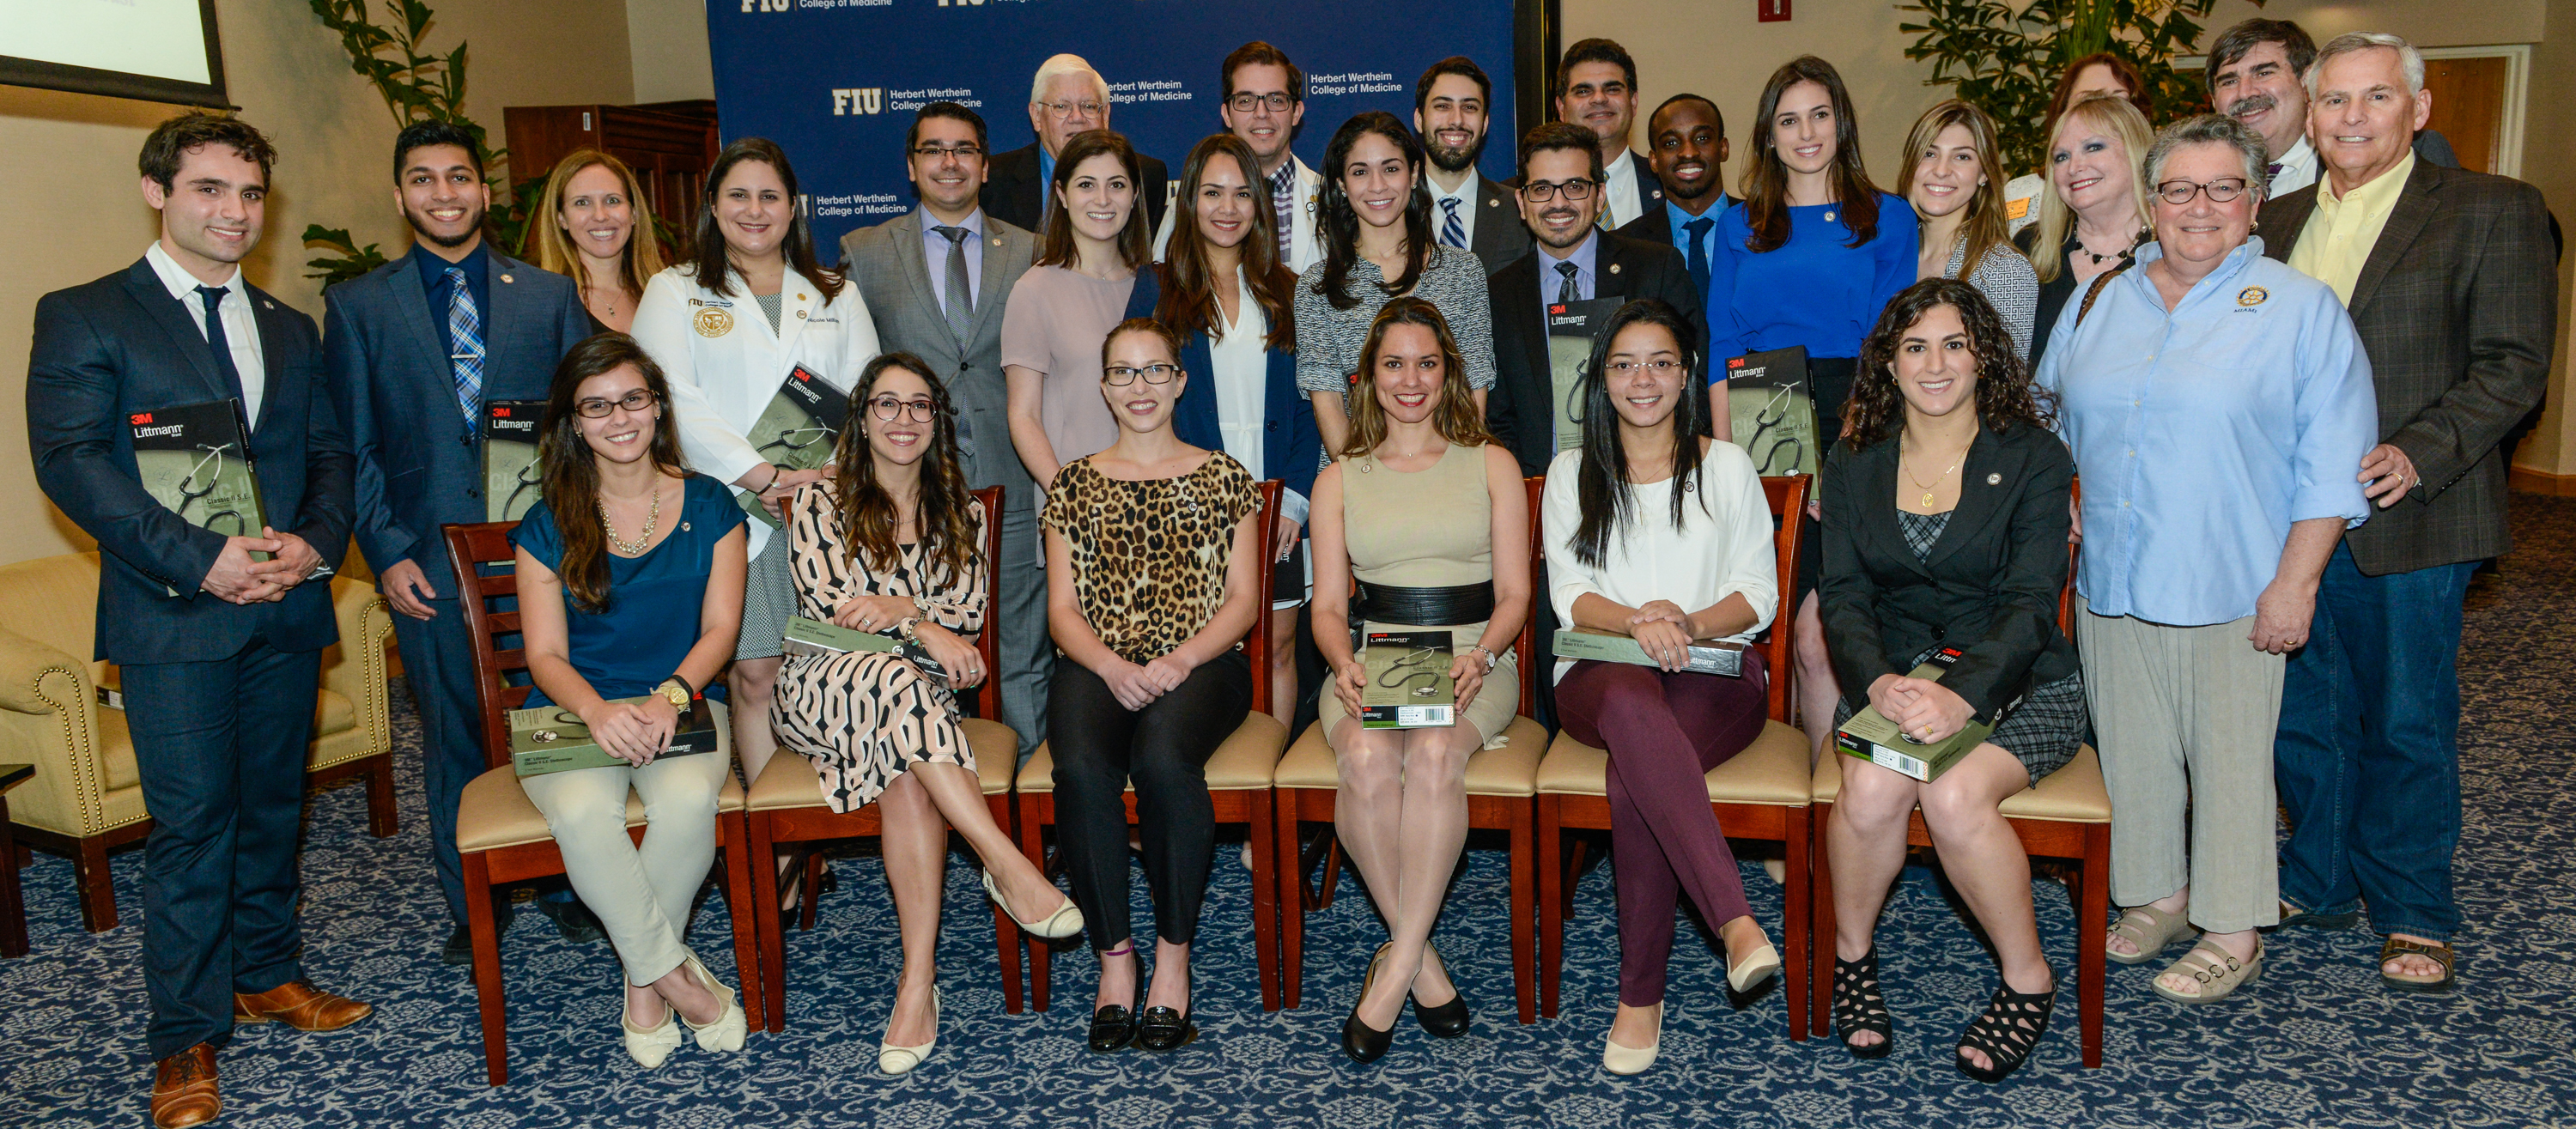 scholarships for medical school Prospective medical students can look for local and federal scholarships to fund their education.